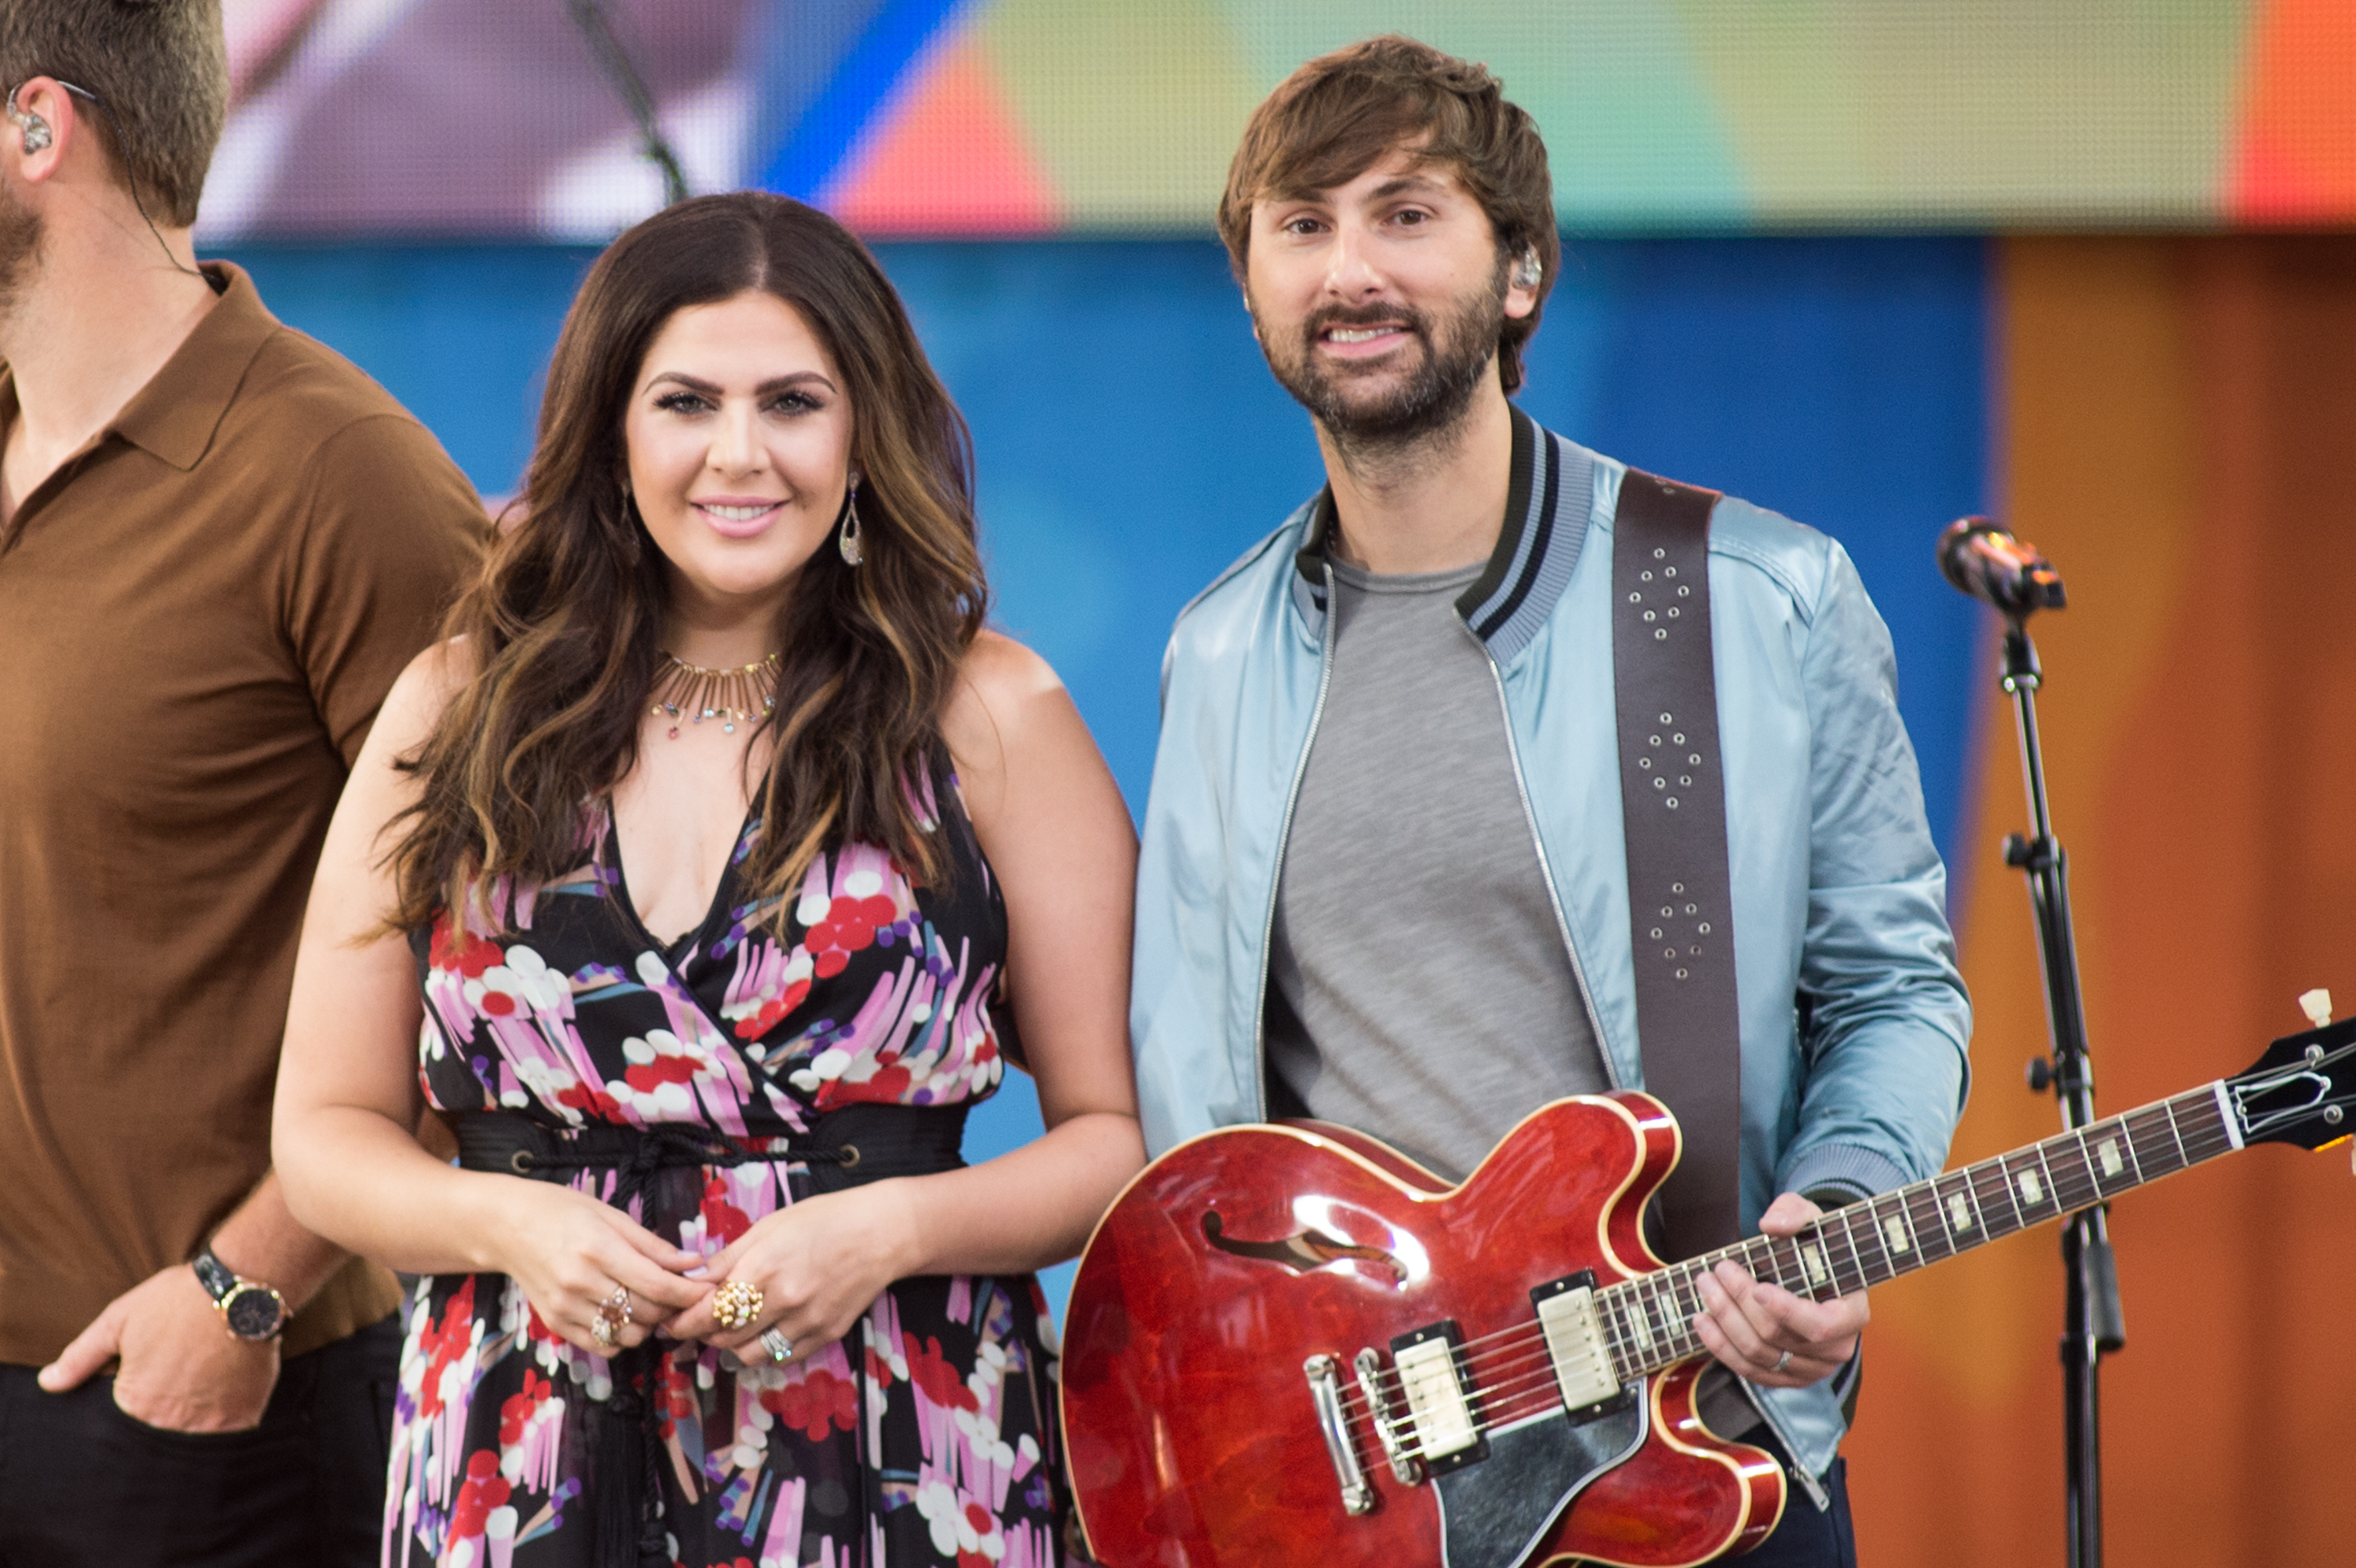 Lady antebellum members hillary scott dave haywood for Is hillary from lady antebellum pregnant